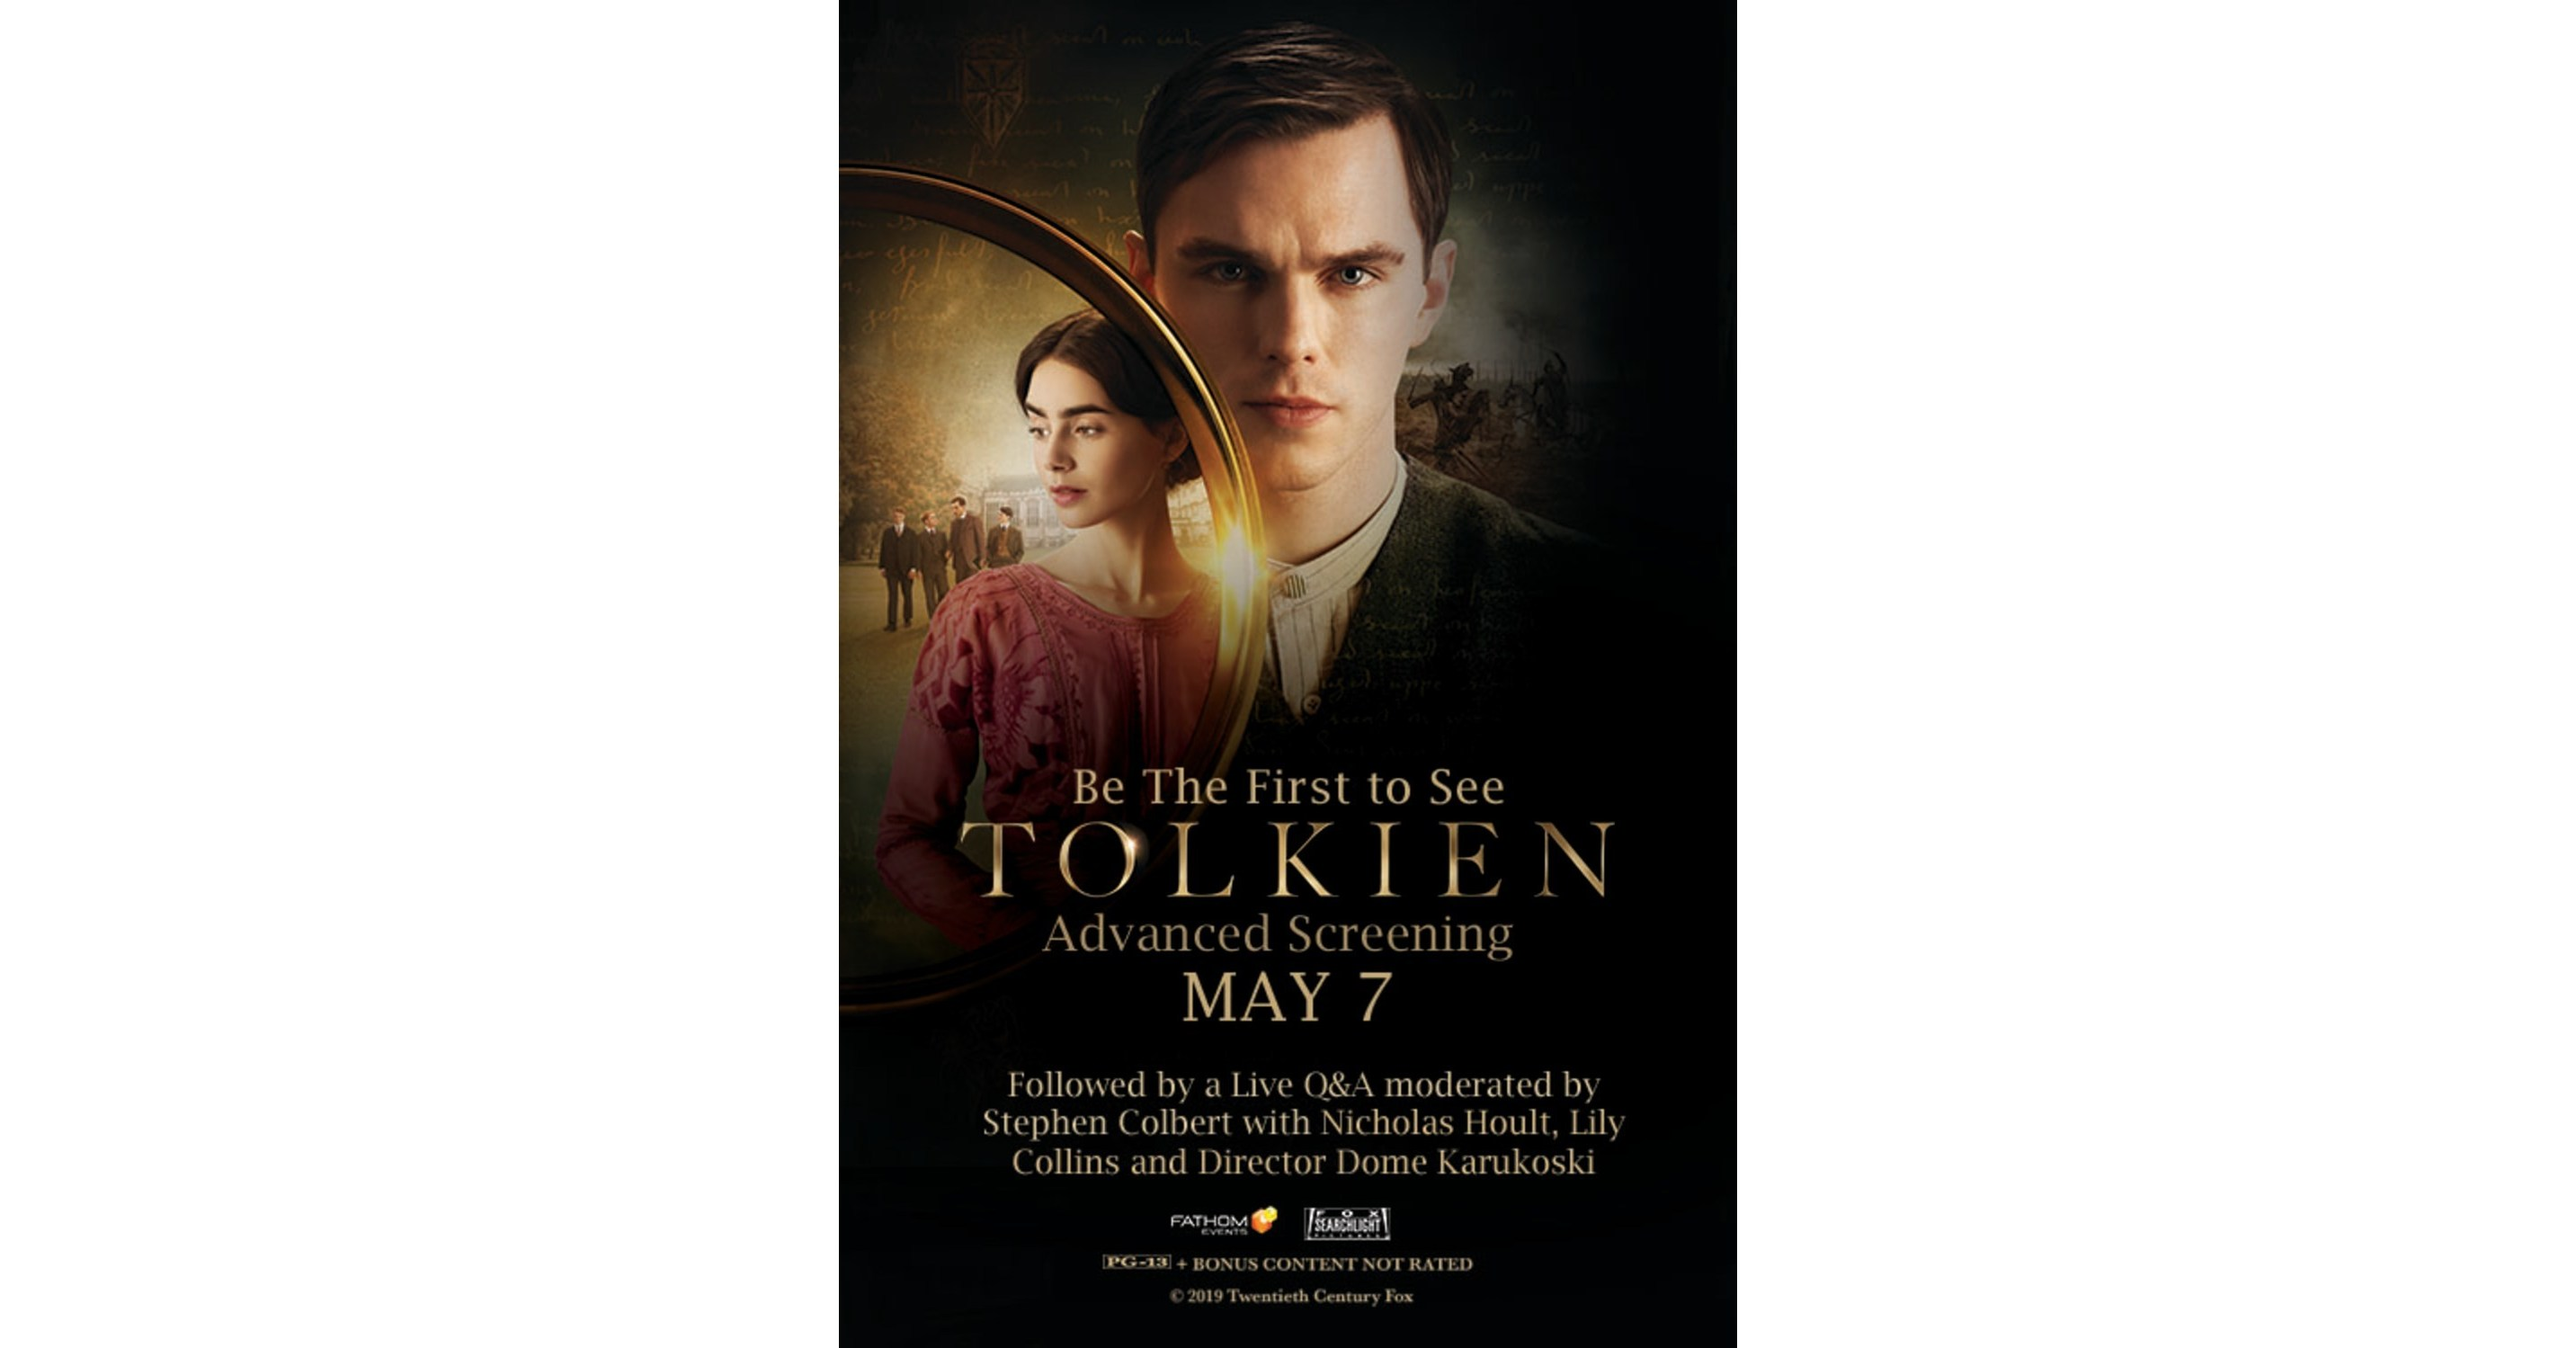 Tolkien,' From Fox Searchlight Pictures, Premieres as a One